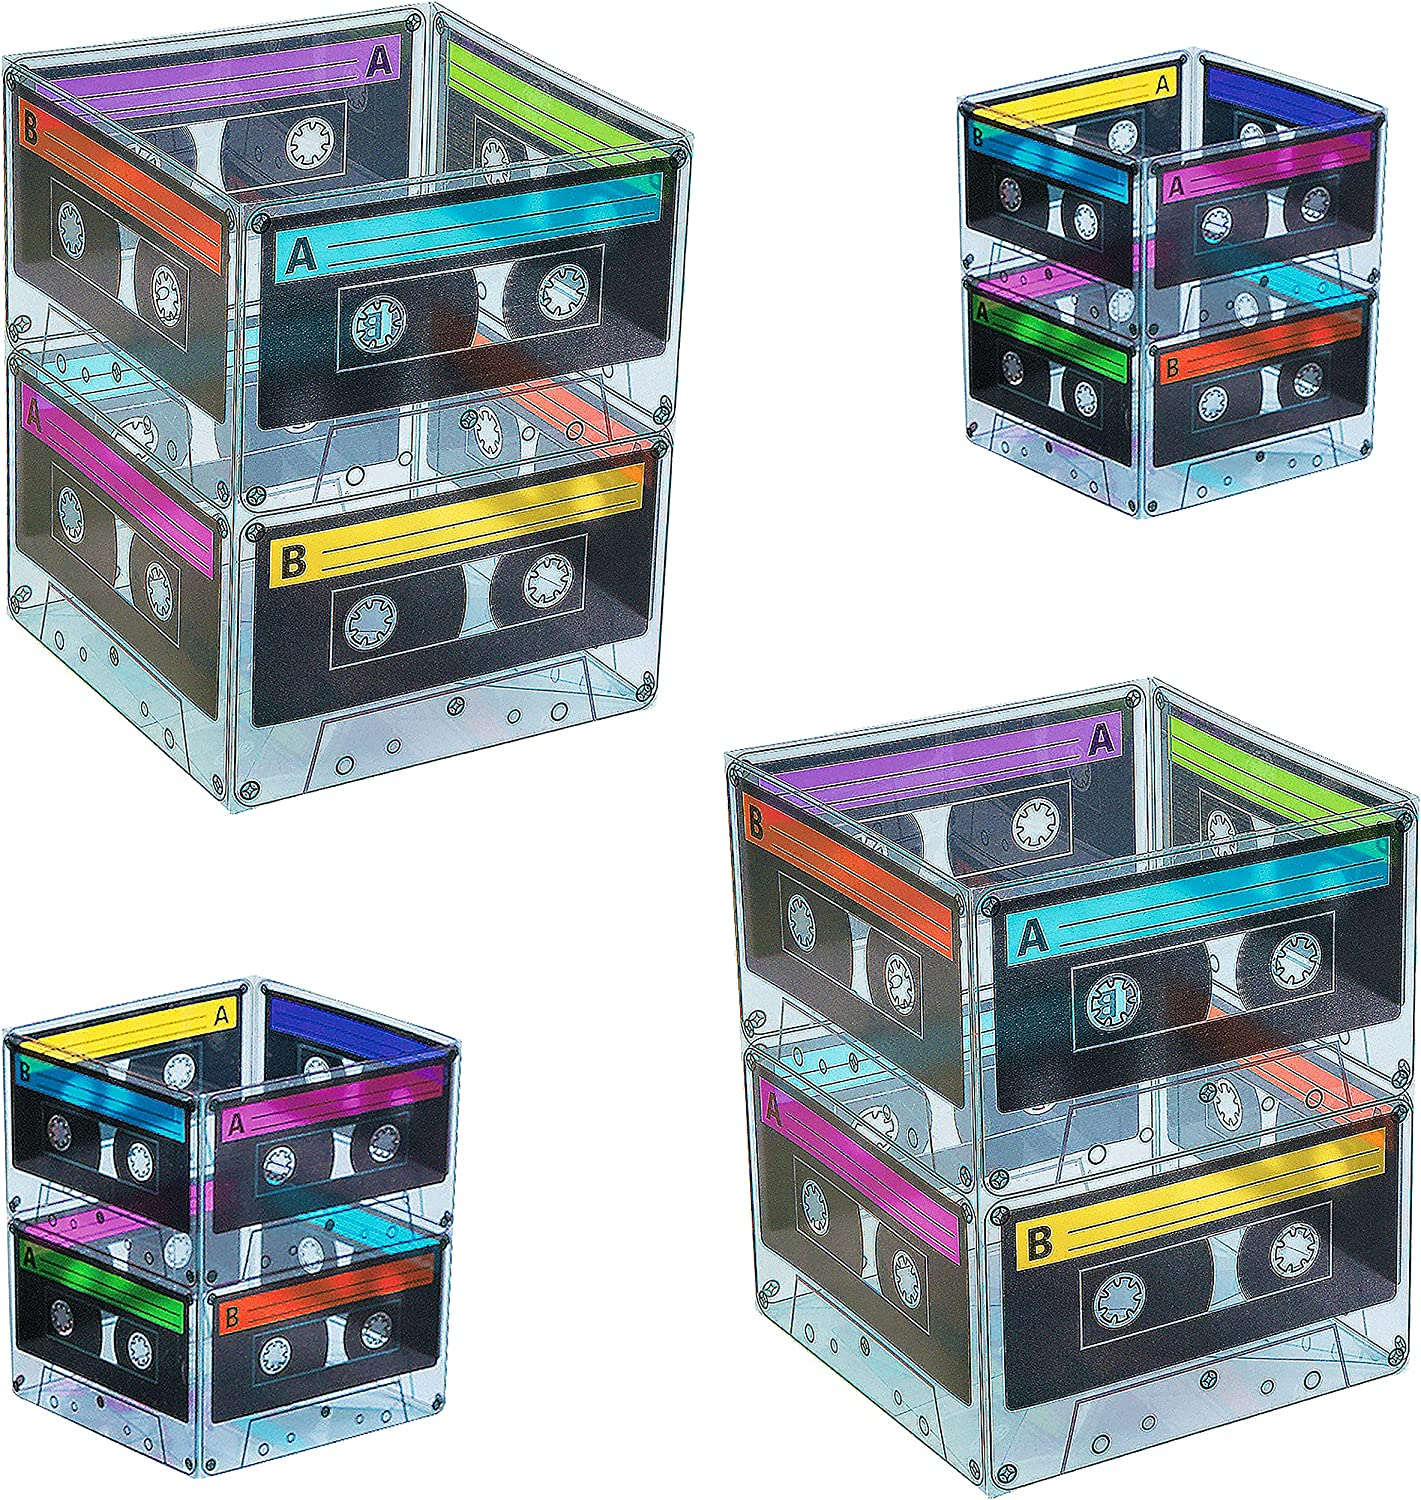 Cassette Tape Bucket Centerpiece (4 Pack) 80s Party Supplies, 90's 80s Theme Birthday Party Decoration Cassette Tape Table Decor, Retro Hip Hop Pop Music Culture Party for Adults & Kids by 4E's Novelty